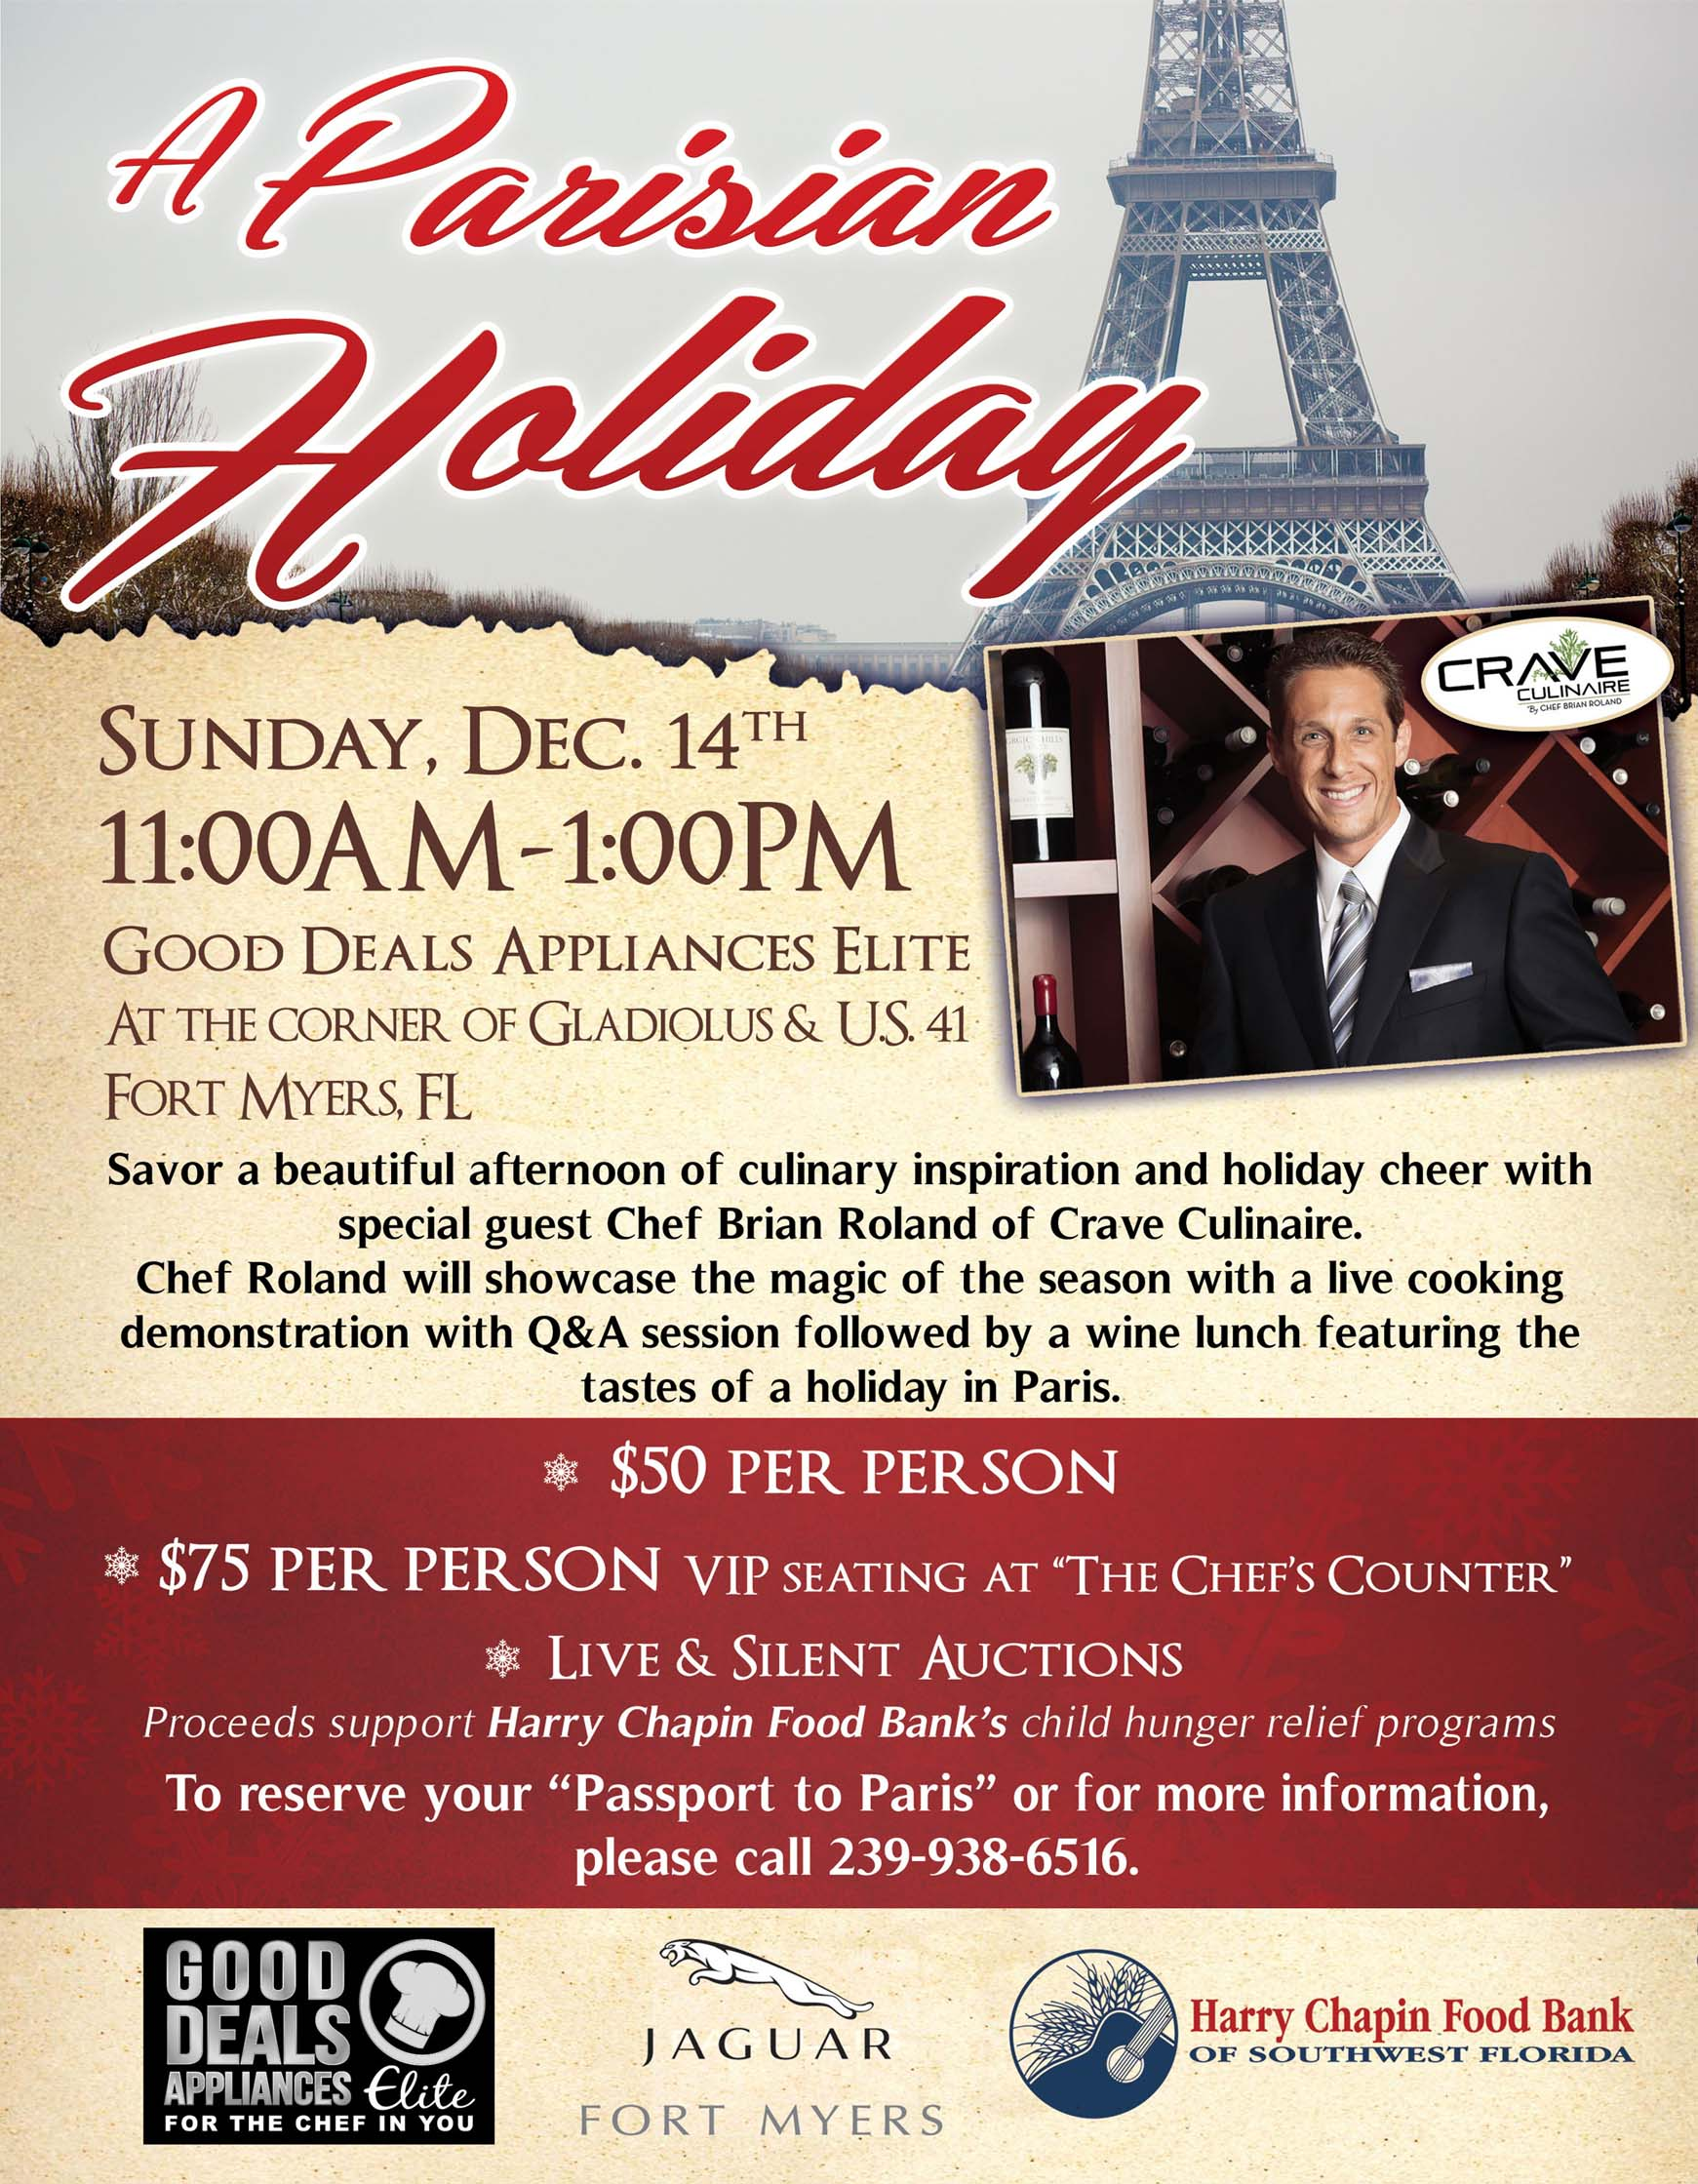 ChristmasInParis_GoodDeals_Nov2014_Flyer_v2 copy